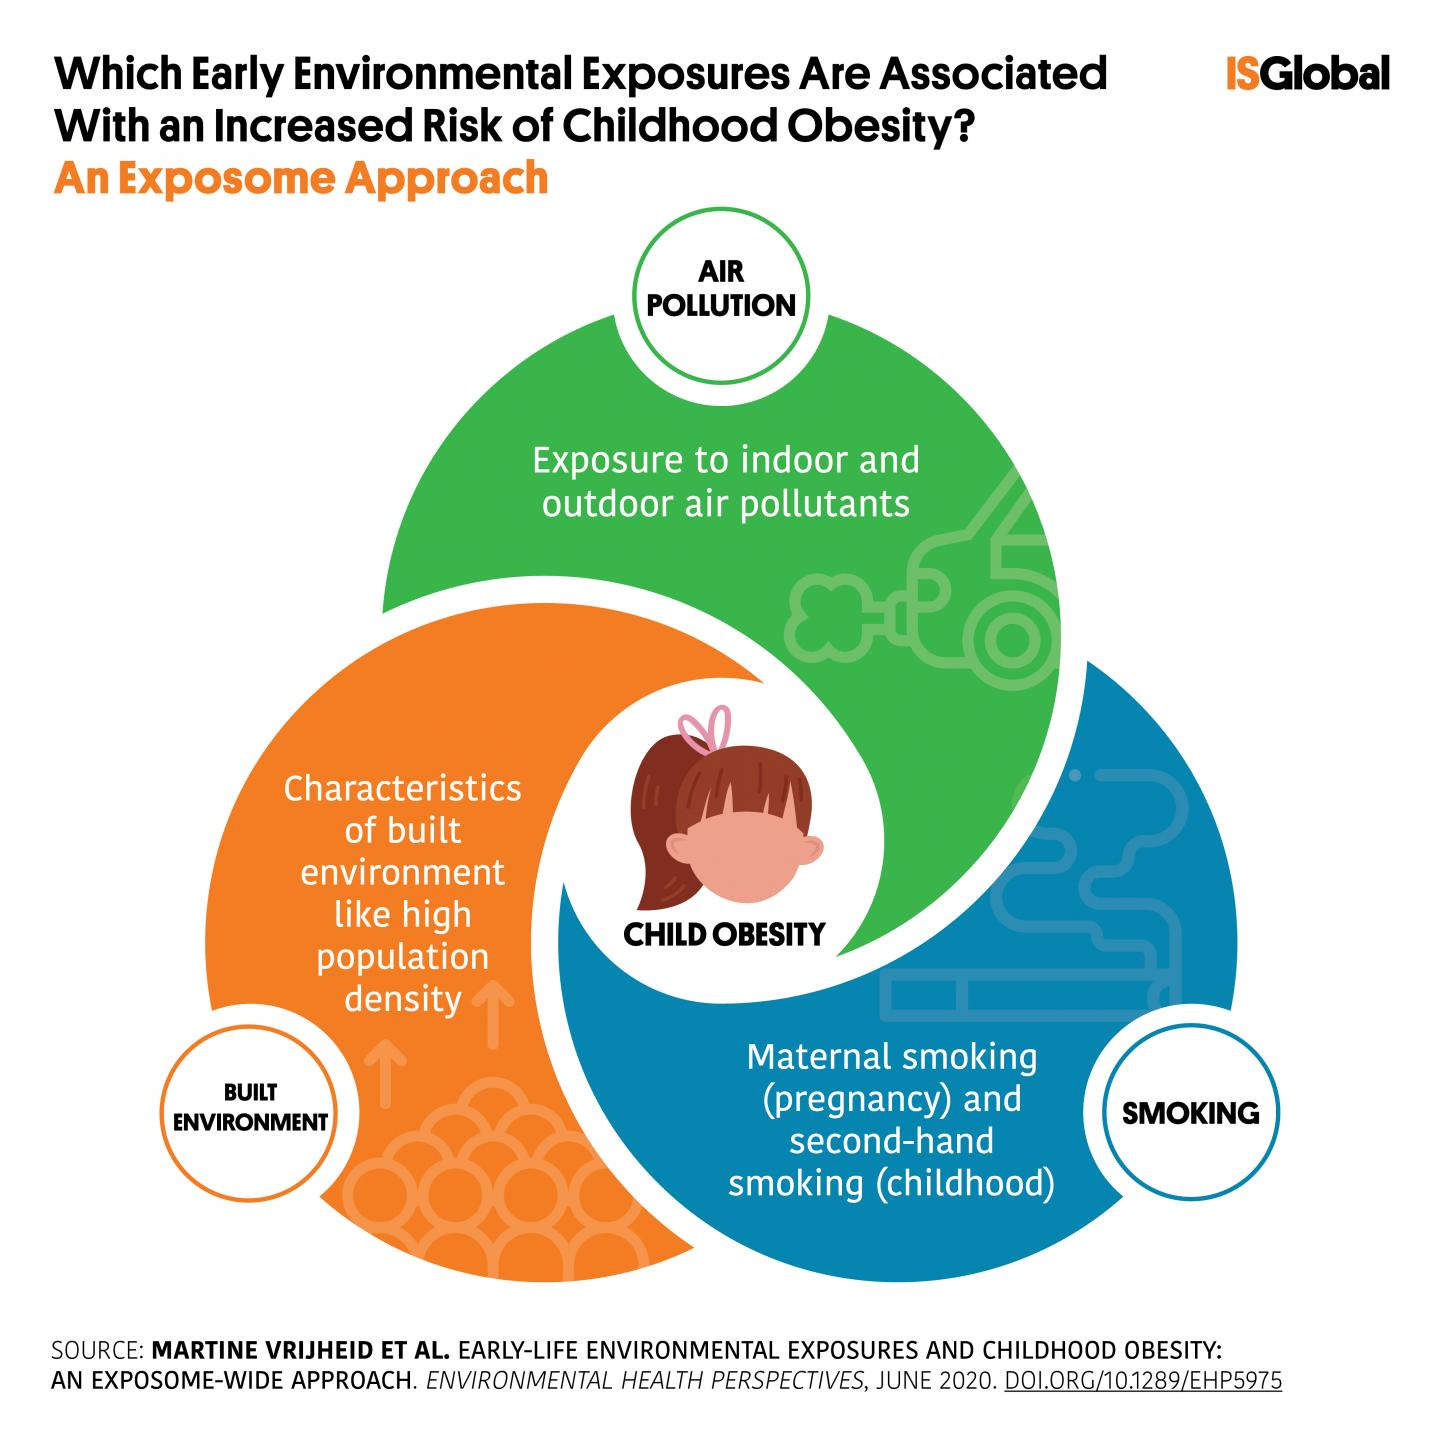 Which Early Environmental Exposures Are Associated With An Increase of Childhood Obesity? An Exposome Approach